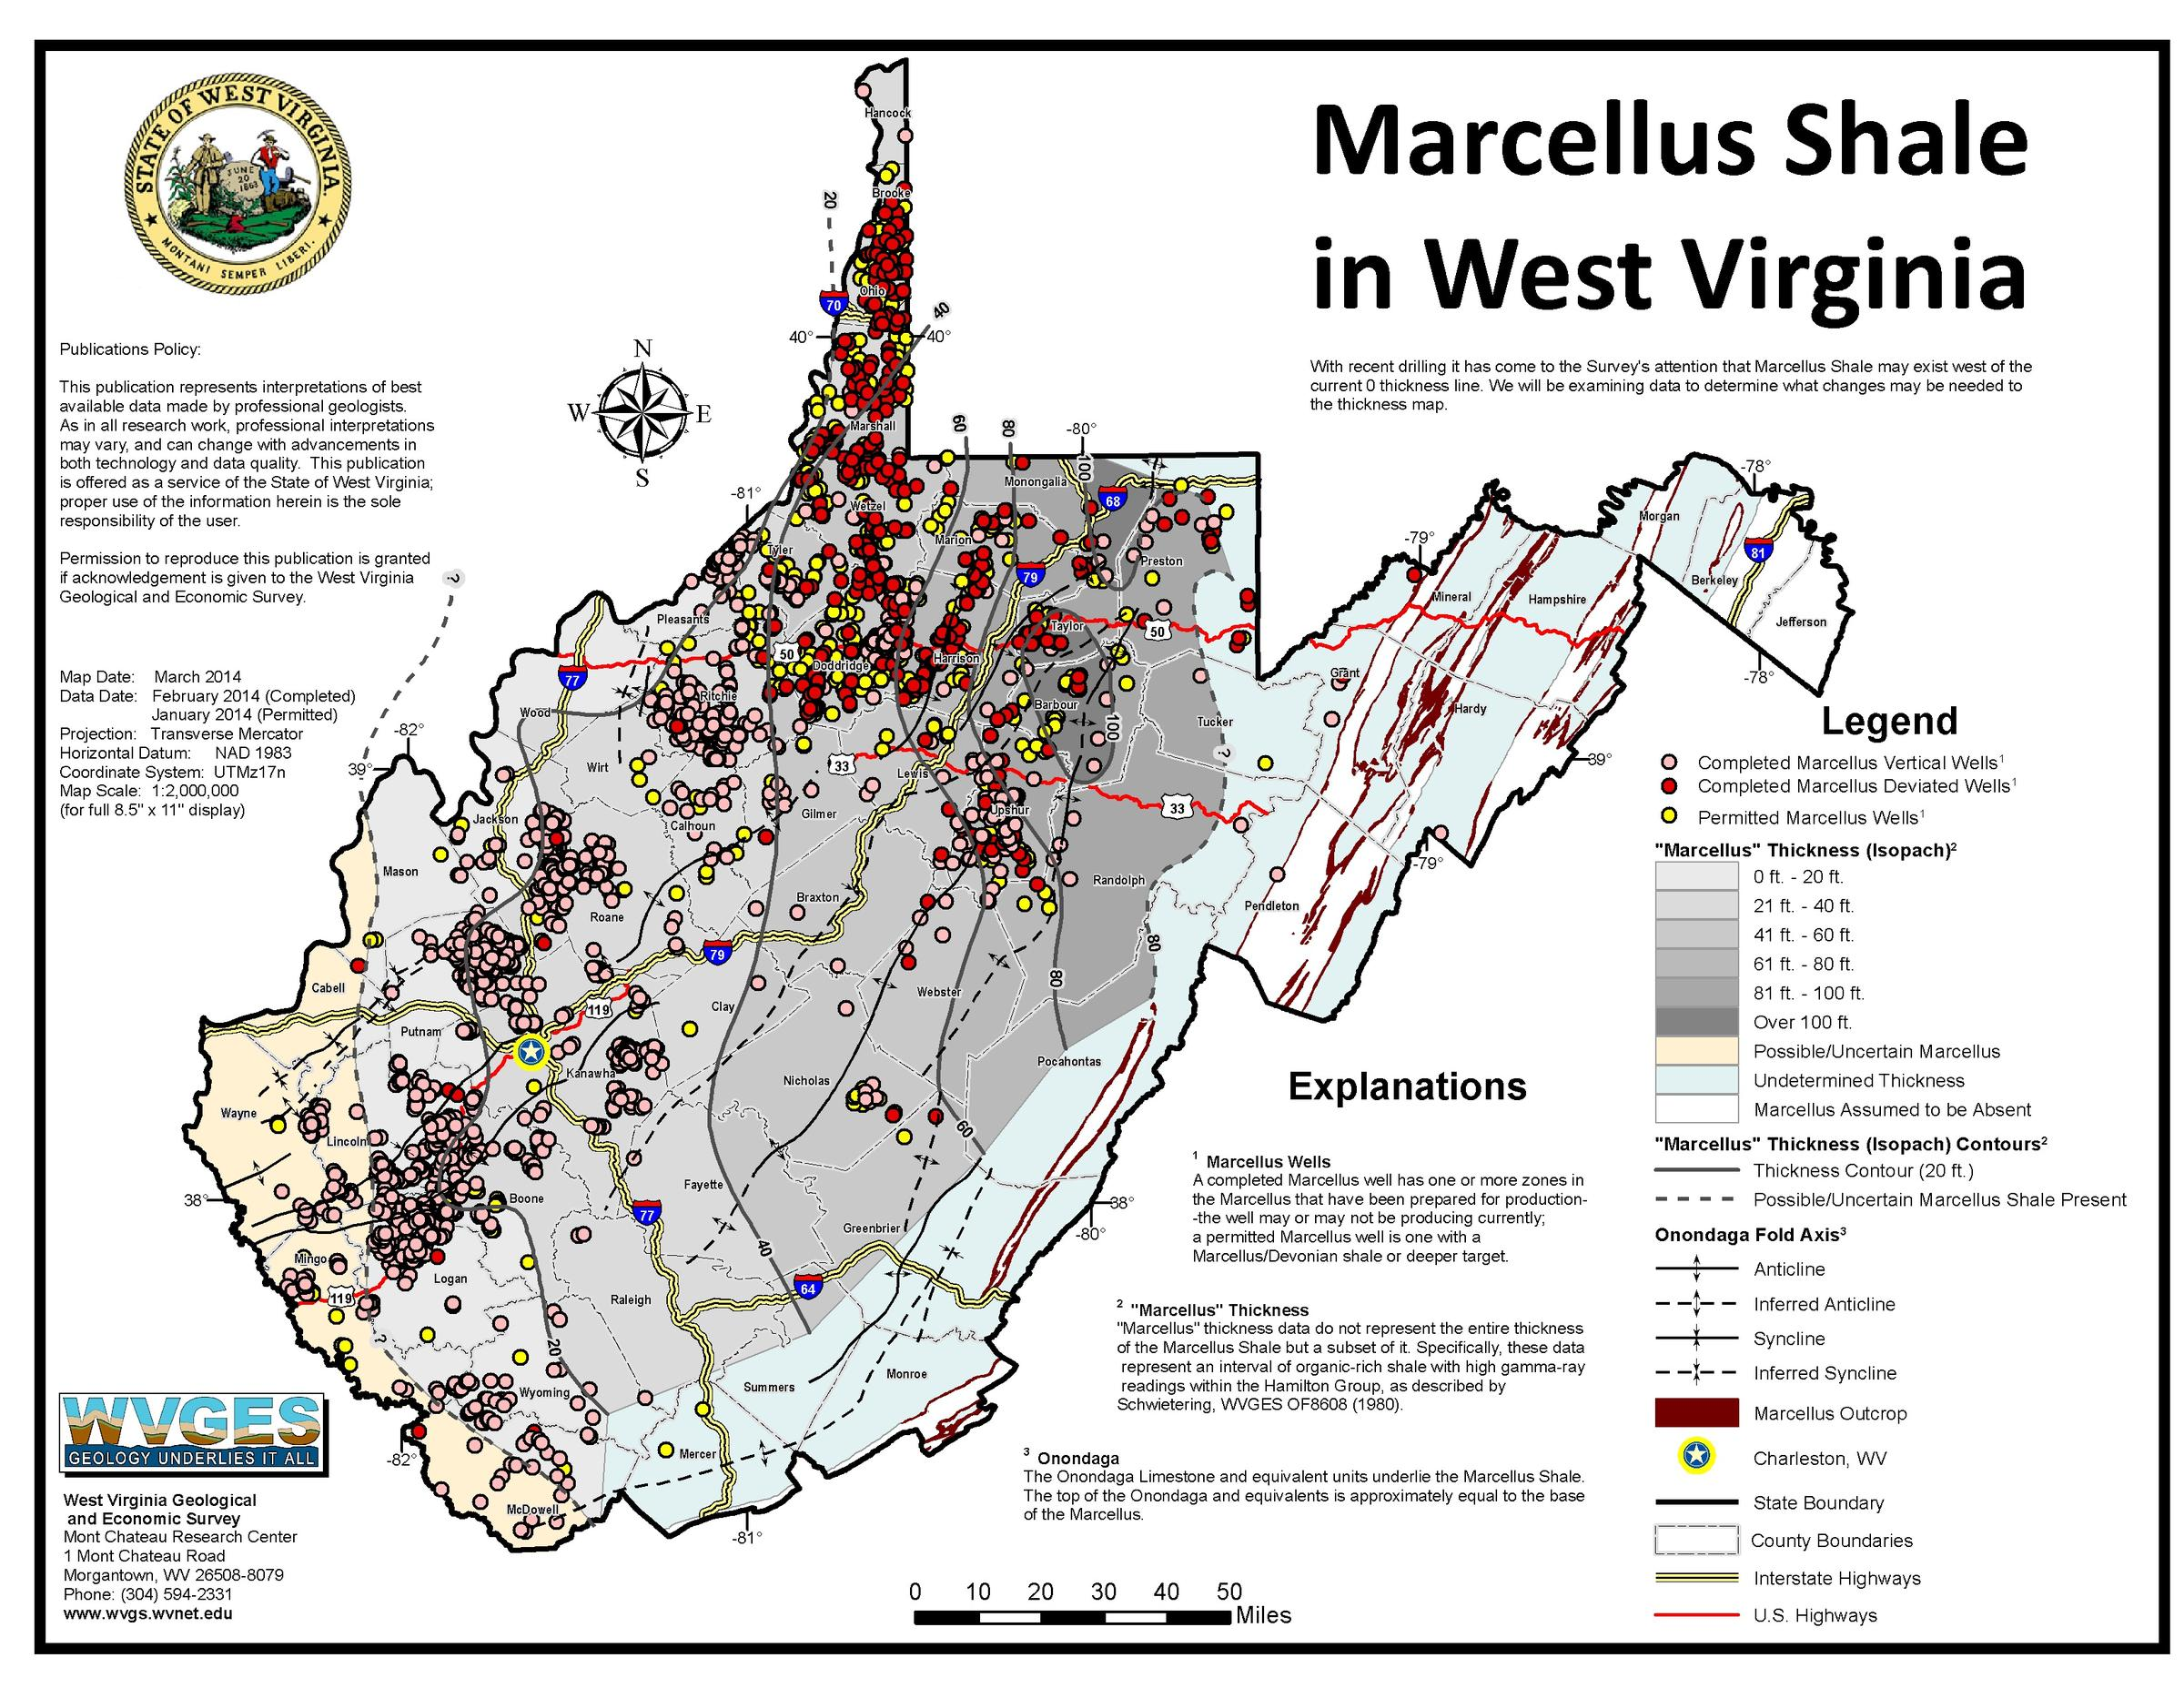 DEP Looks for Comments on New Natural Gas Air Permit | West Virginia